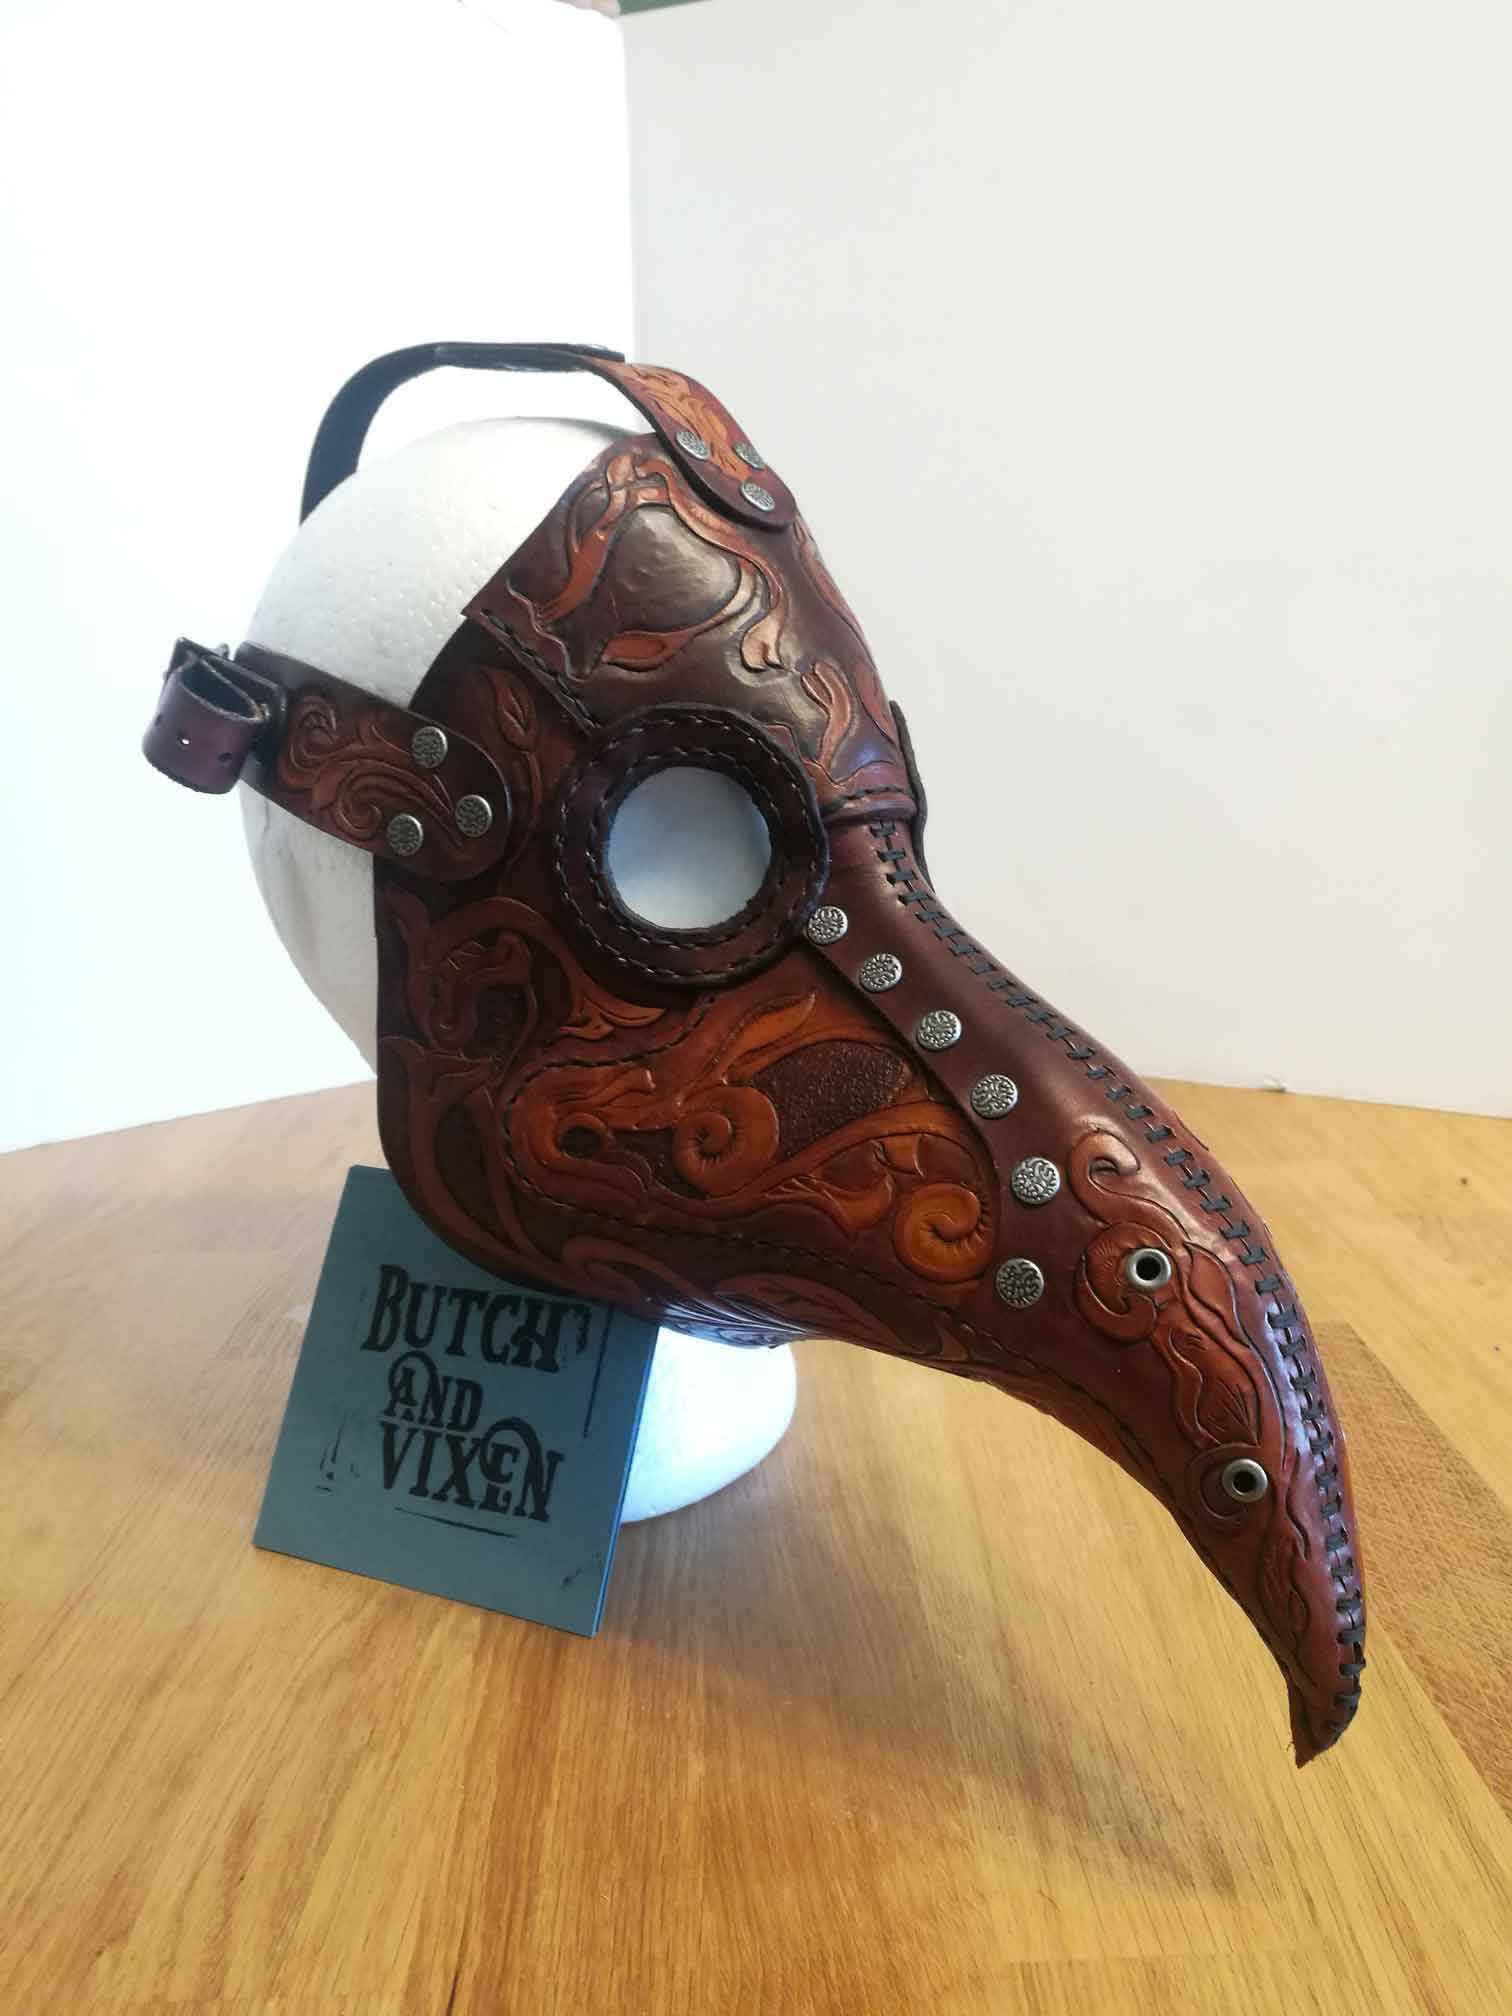 Butch-and-Vixen-Mask-